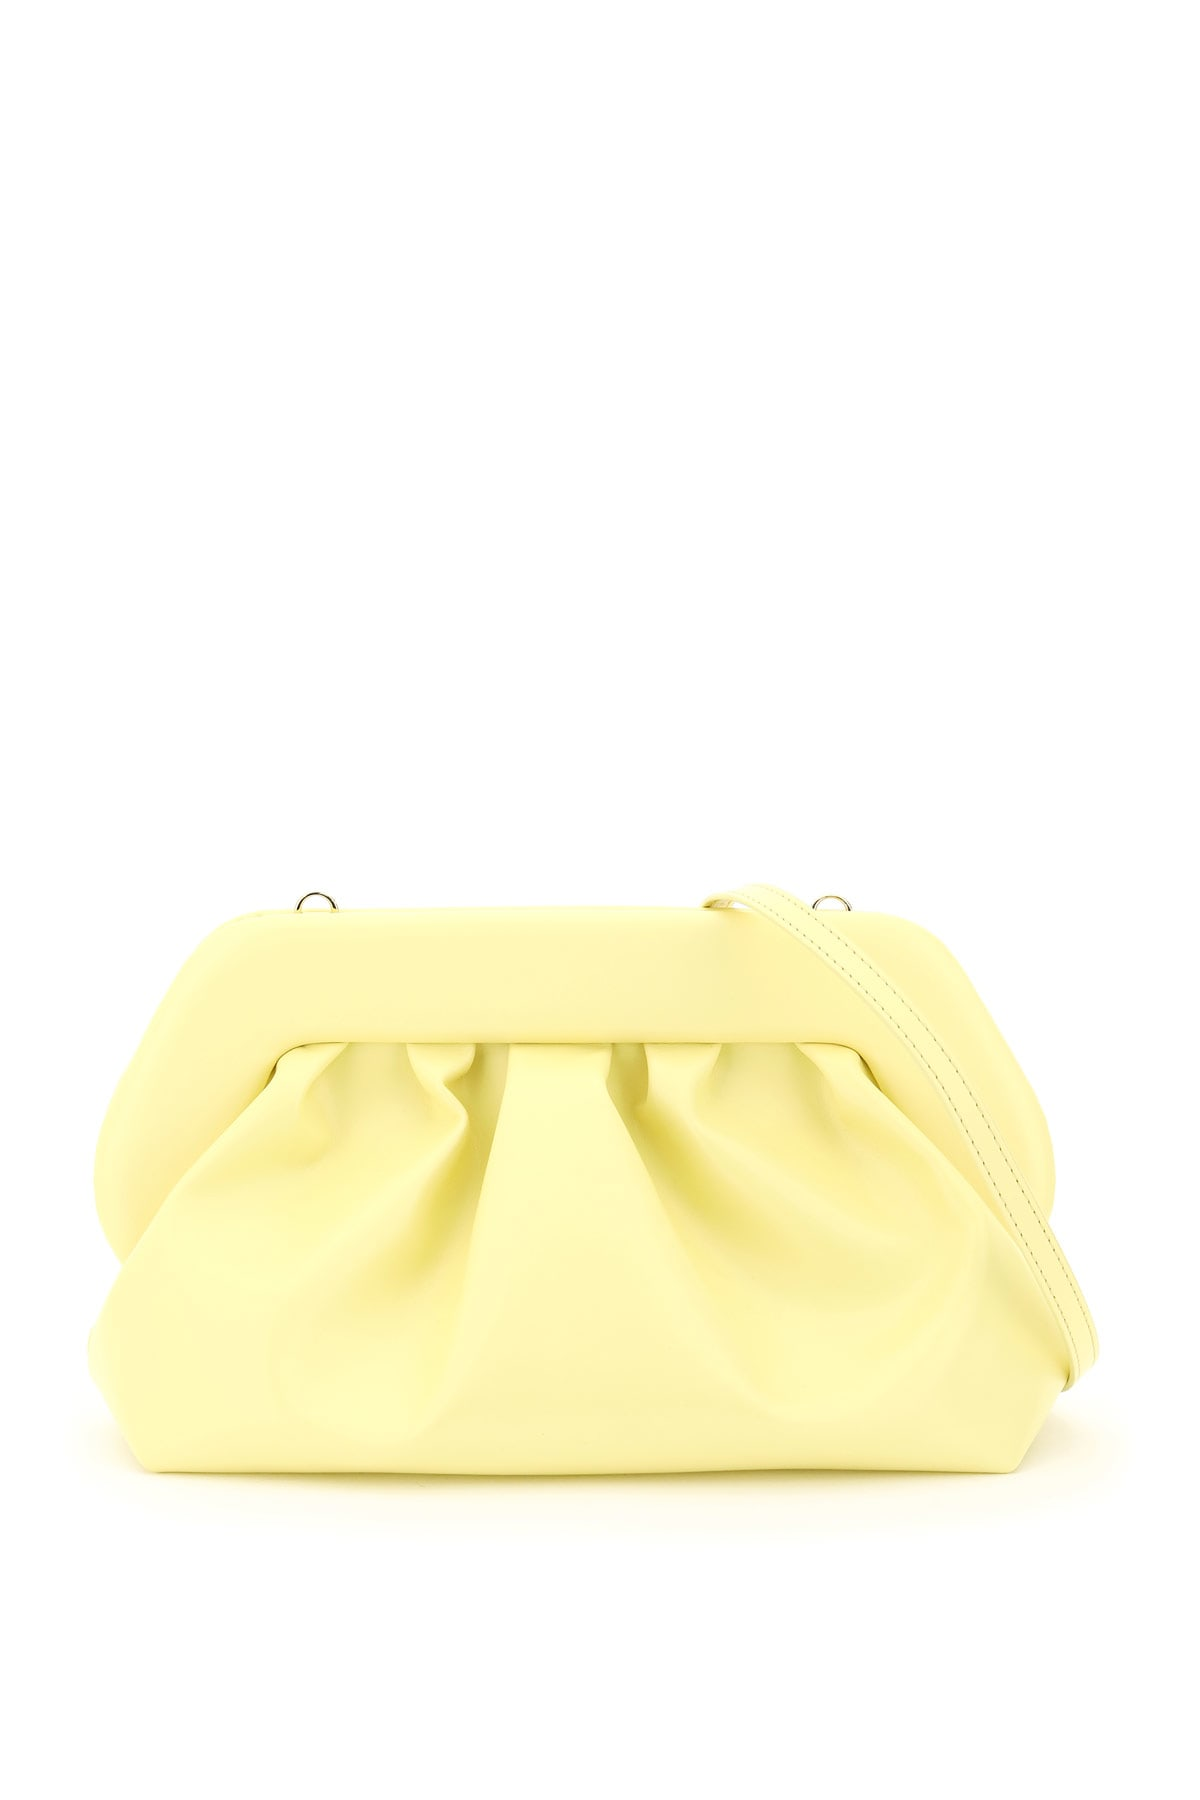 Themoirè Leathers BIOS BASIC VEGAN LEATHER CLUTCH